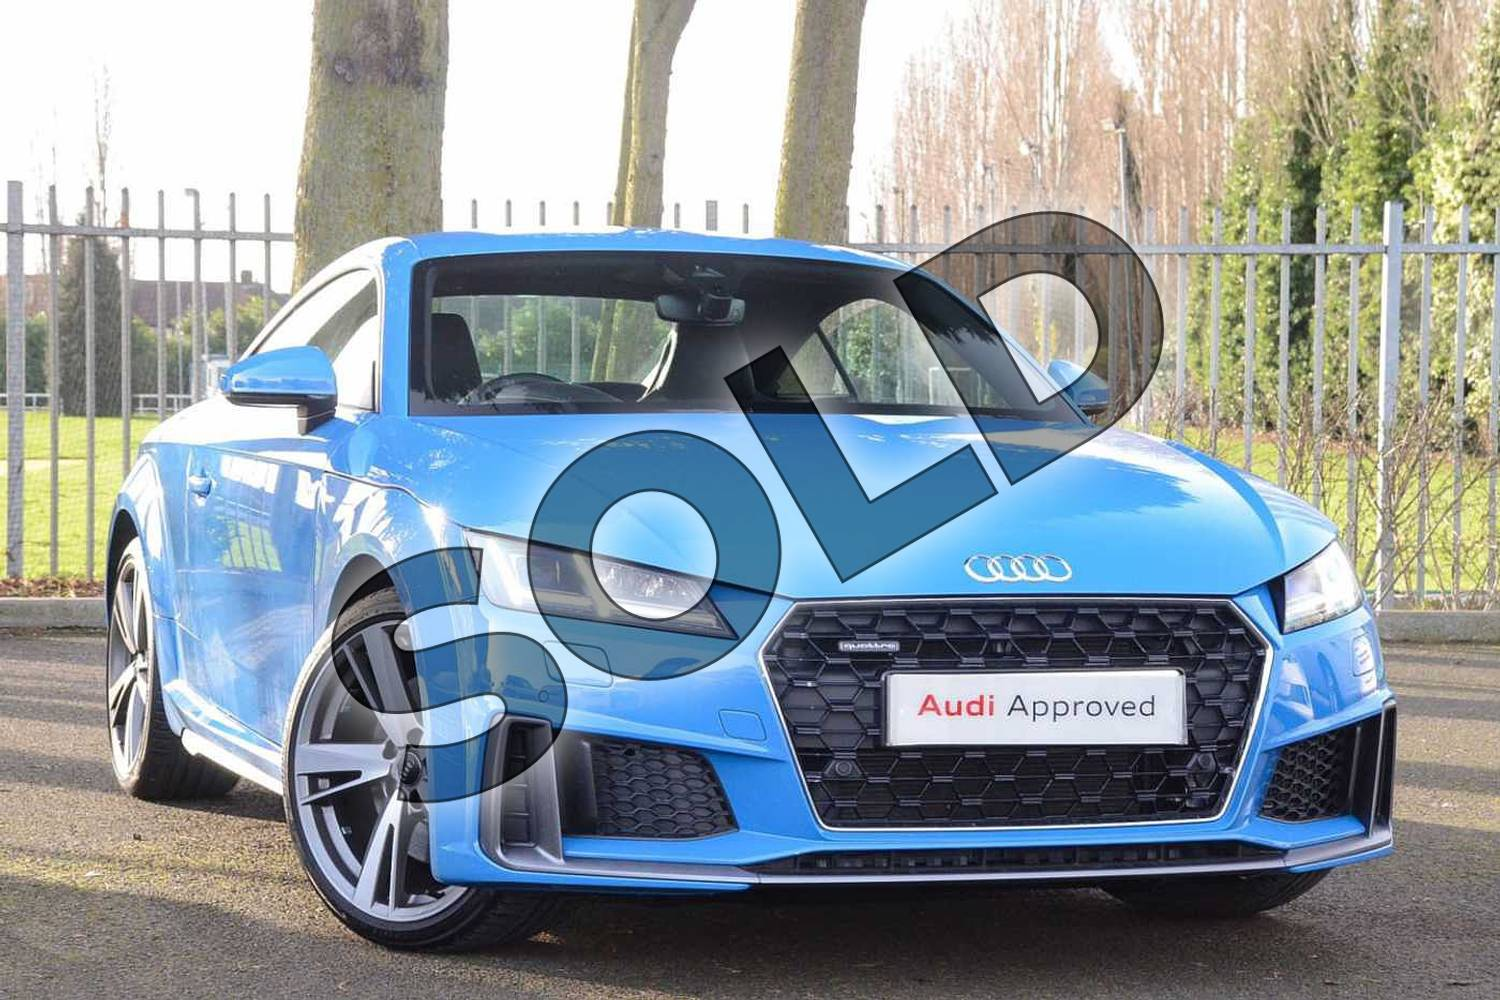 2019 Audi TT Coupe 45 TFSI Quattro S Line 2dr S Tronic in Turbo Blue at Coventry Audi